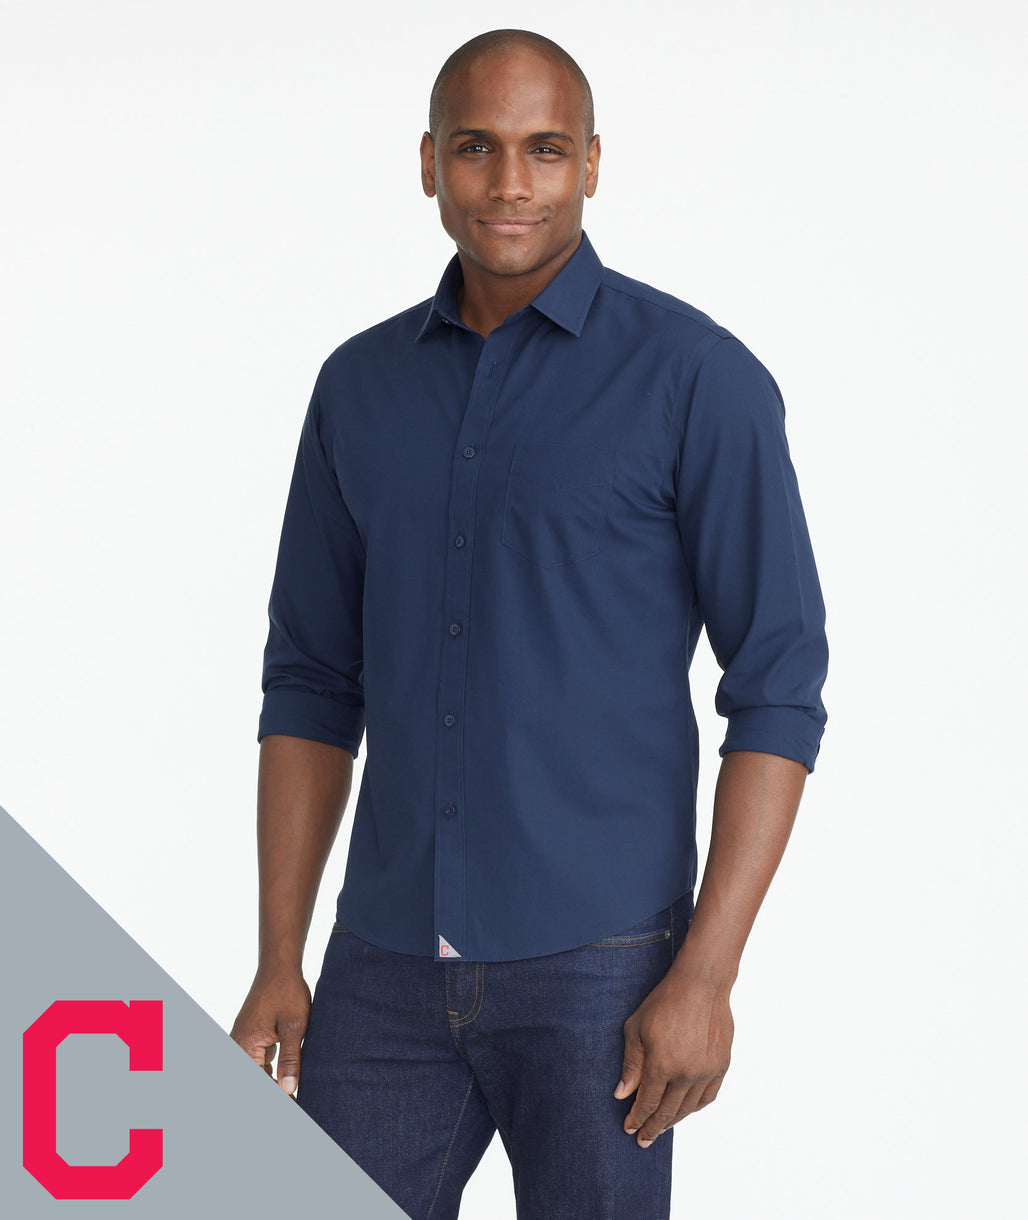 Model wearing a Navy Indians Signature Series Button-Down